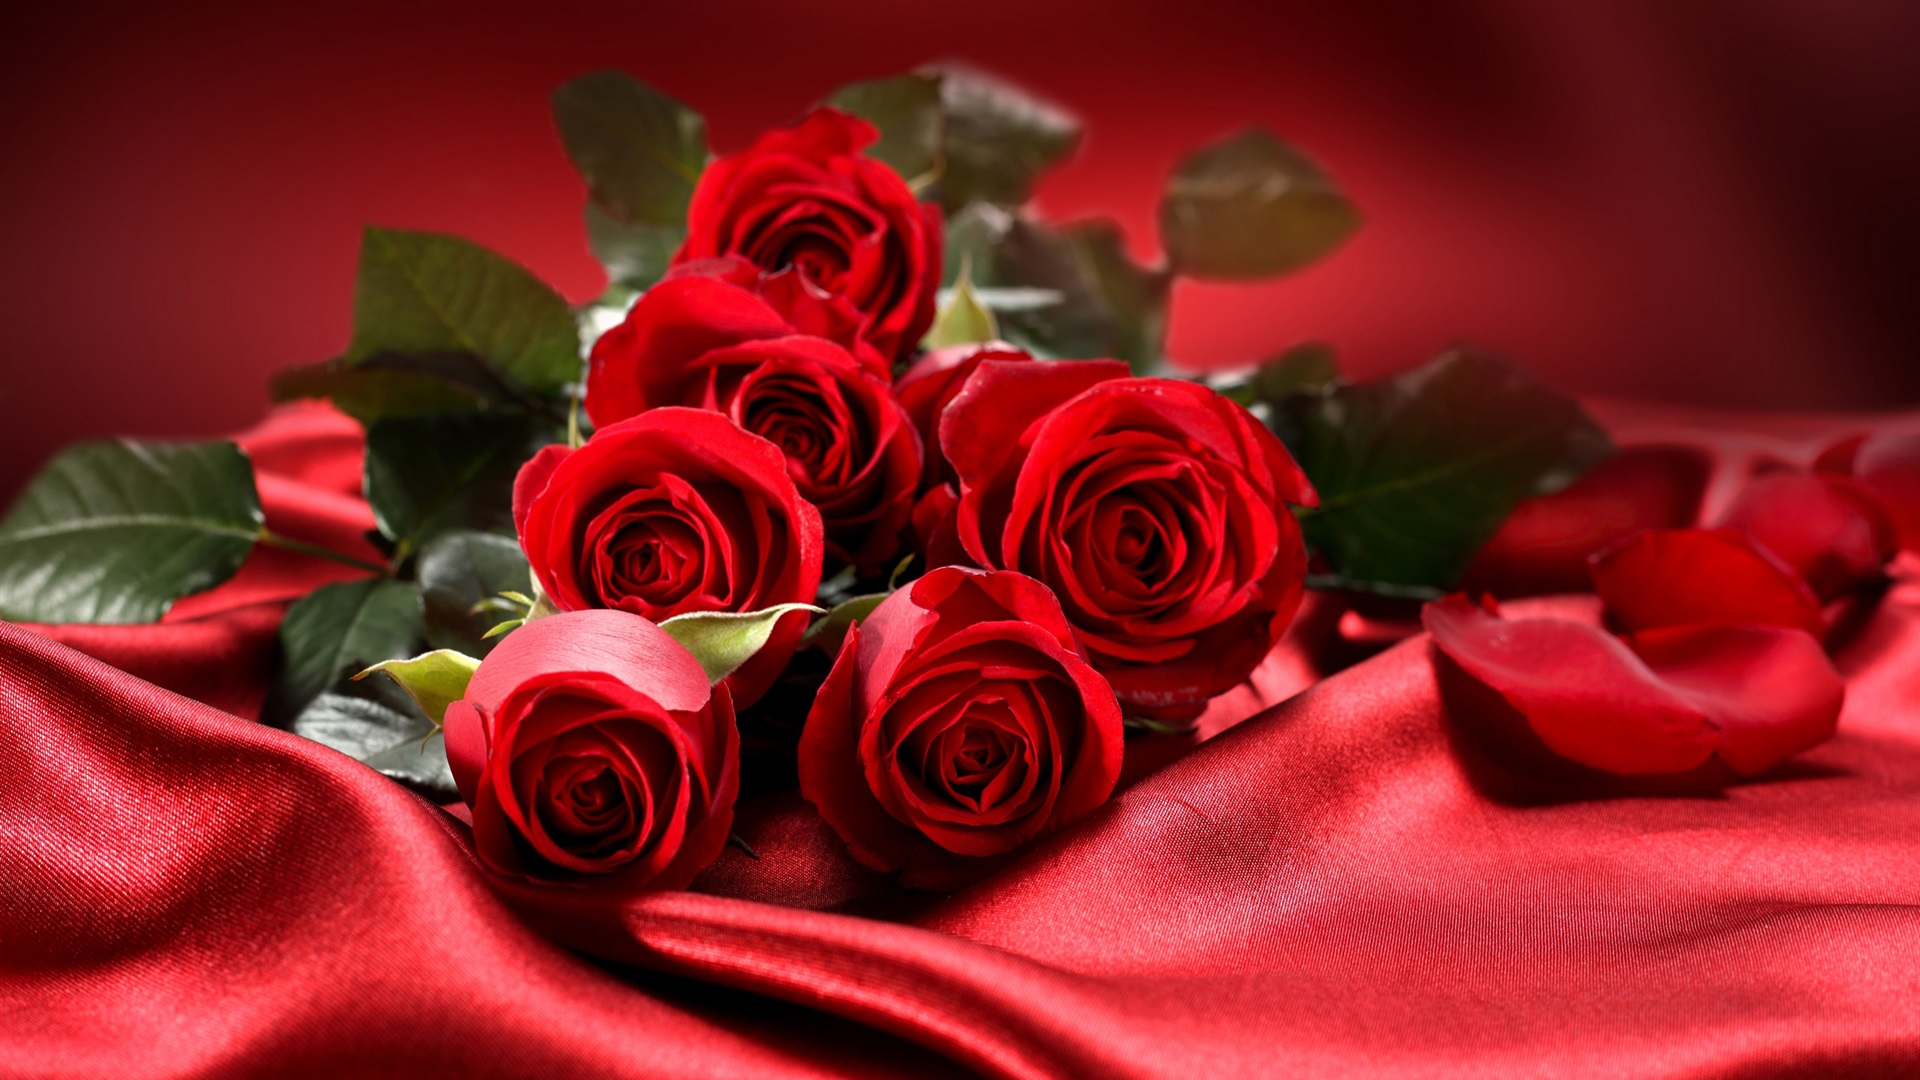 Bouquet-de-fleurs-roses-rouges-amour-Saint-Valentin-Fonds-d-écran-wallpaper-wp3603690